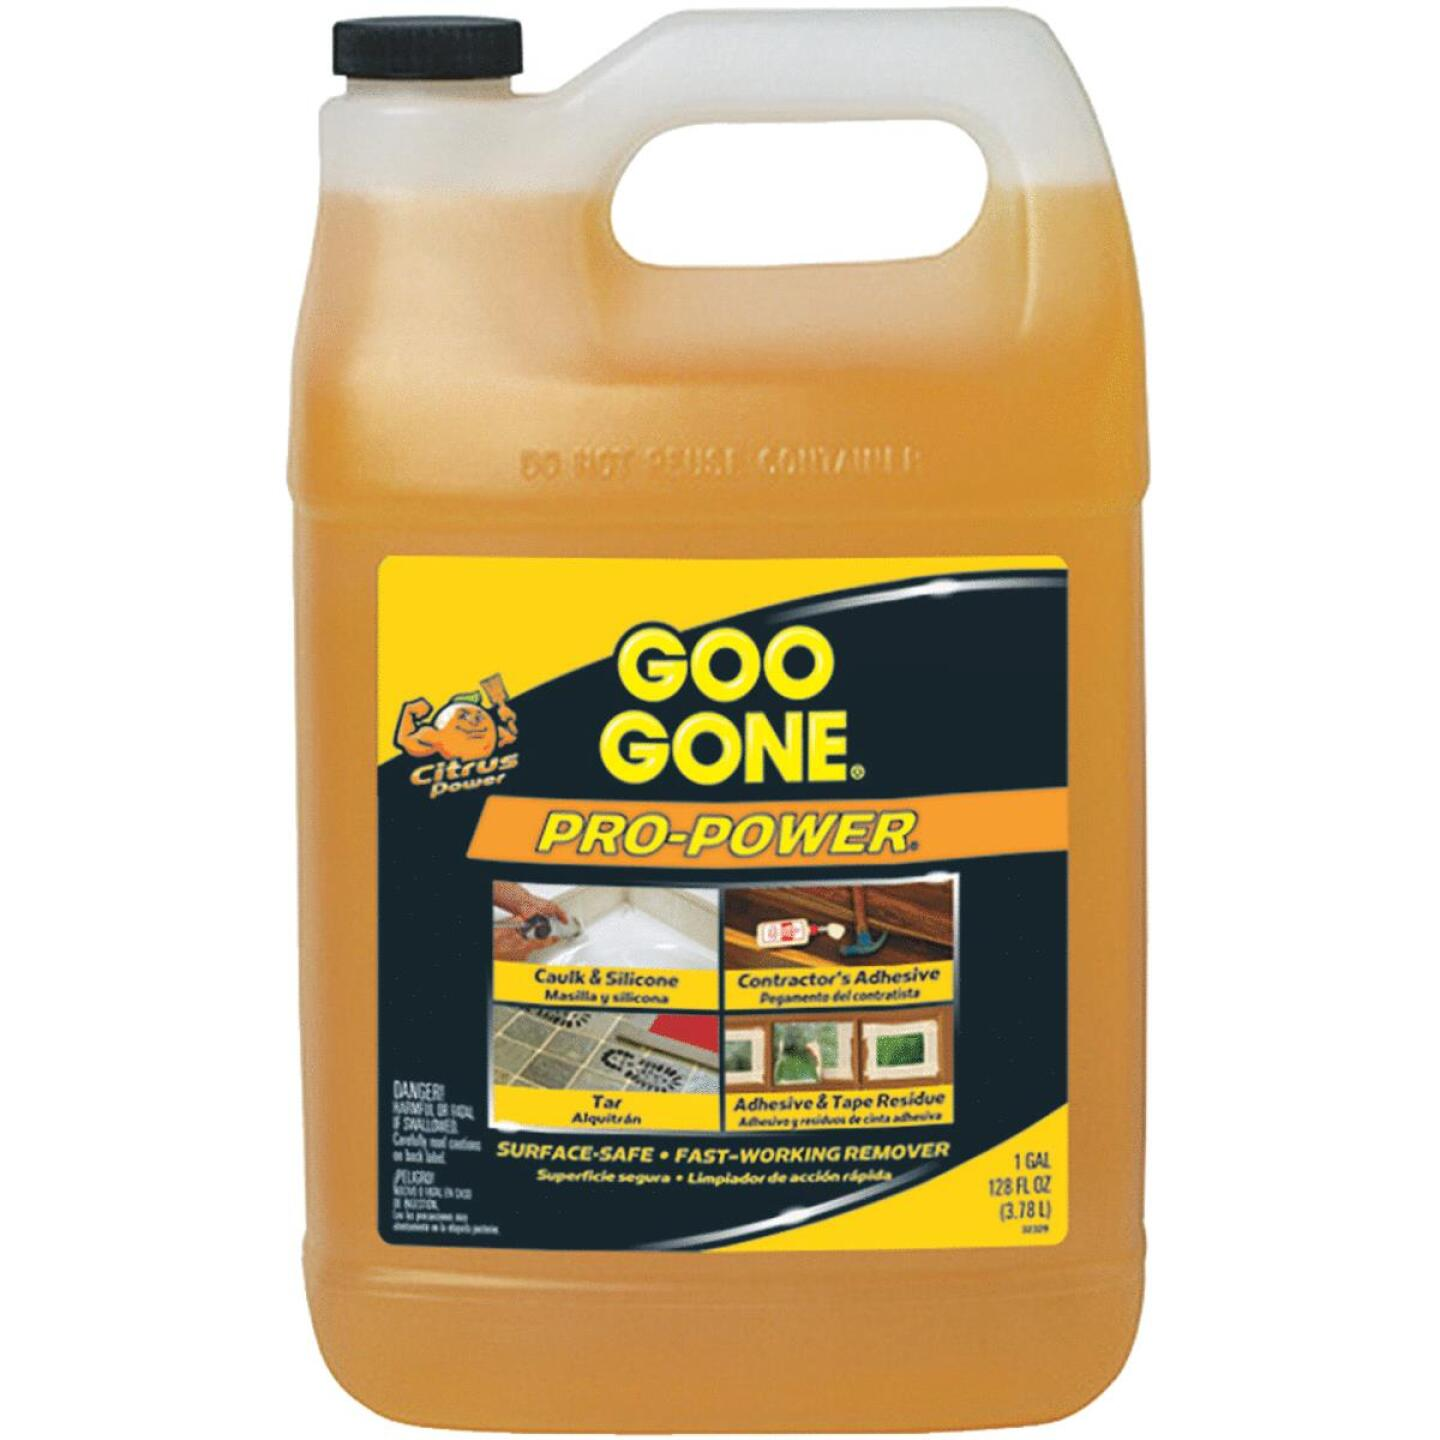 Goo Gone 1 Gal. Pro-Power Adhesive Remover Image 49